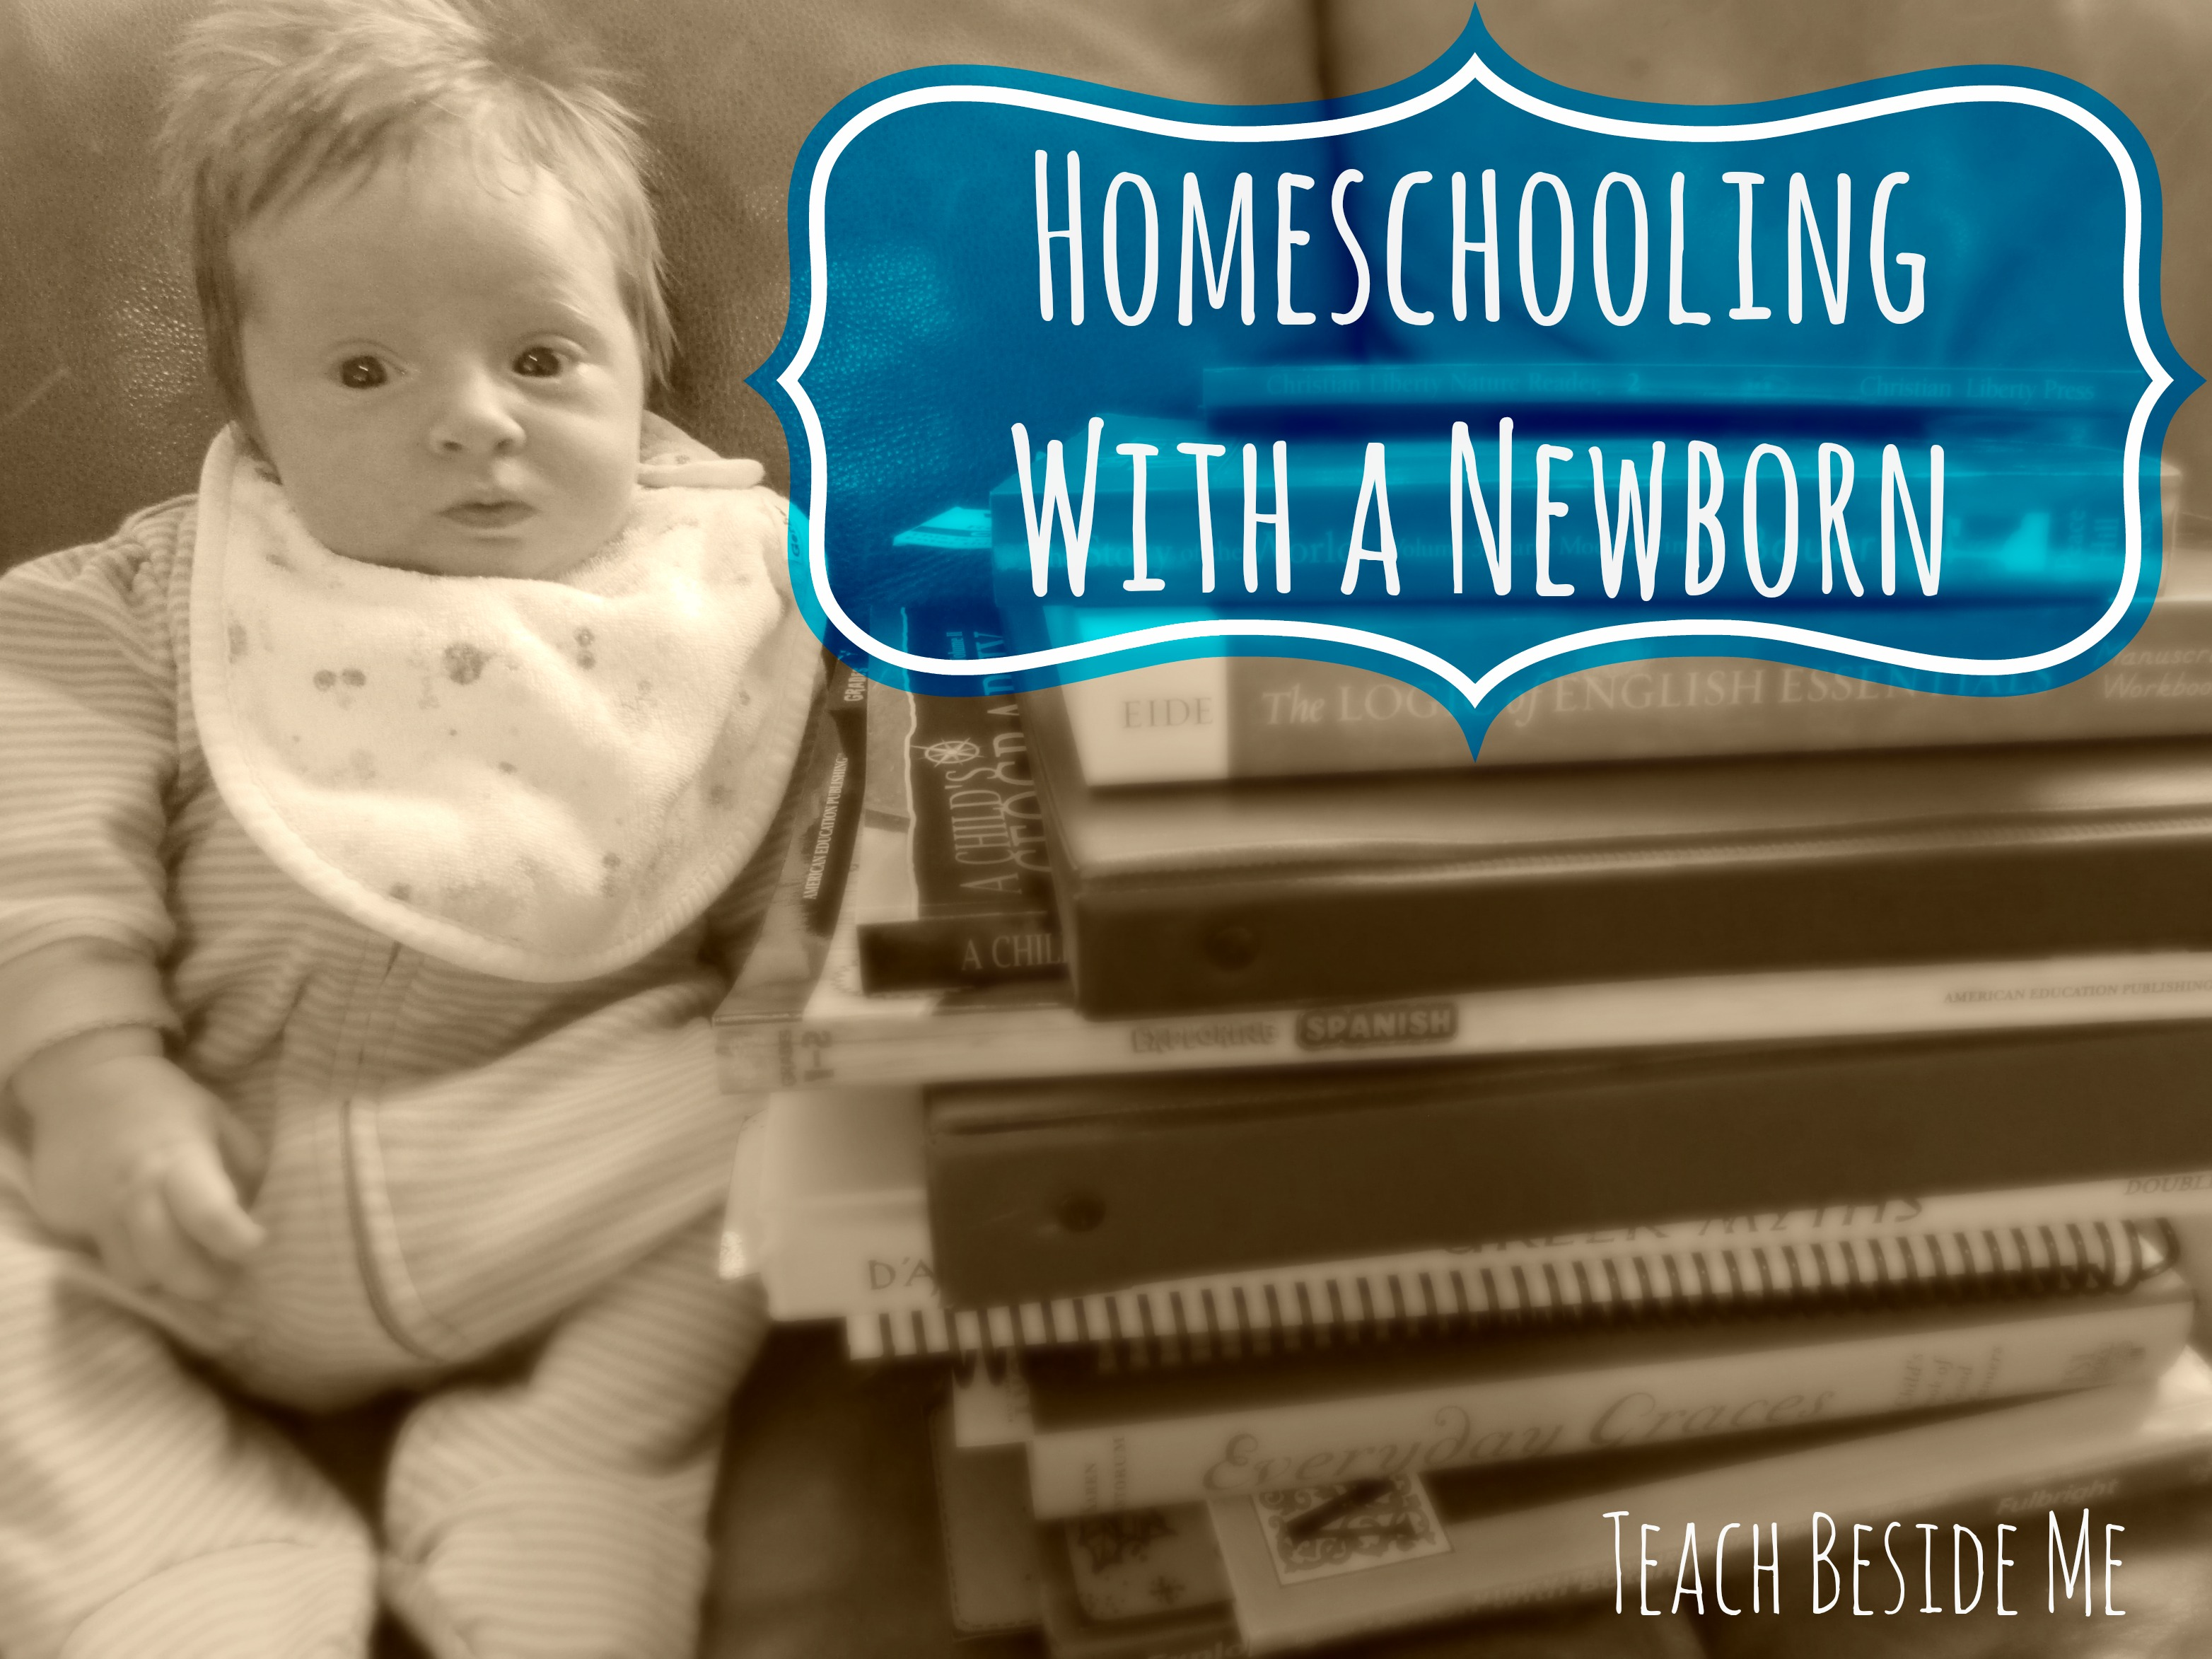 Homeschooling With A Newborn Homeschooling With A Newborn Teach Beside Me